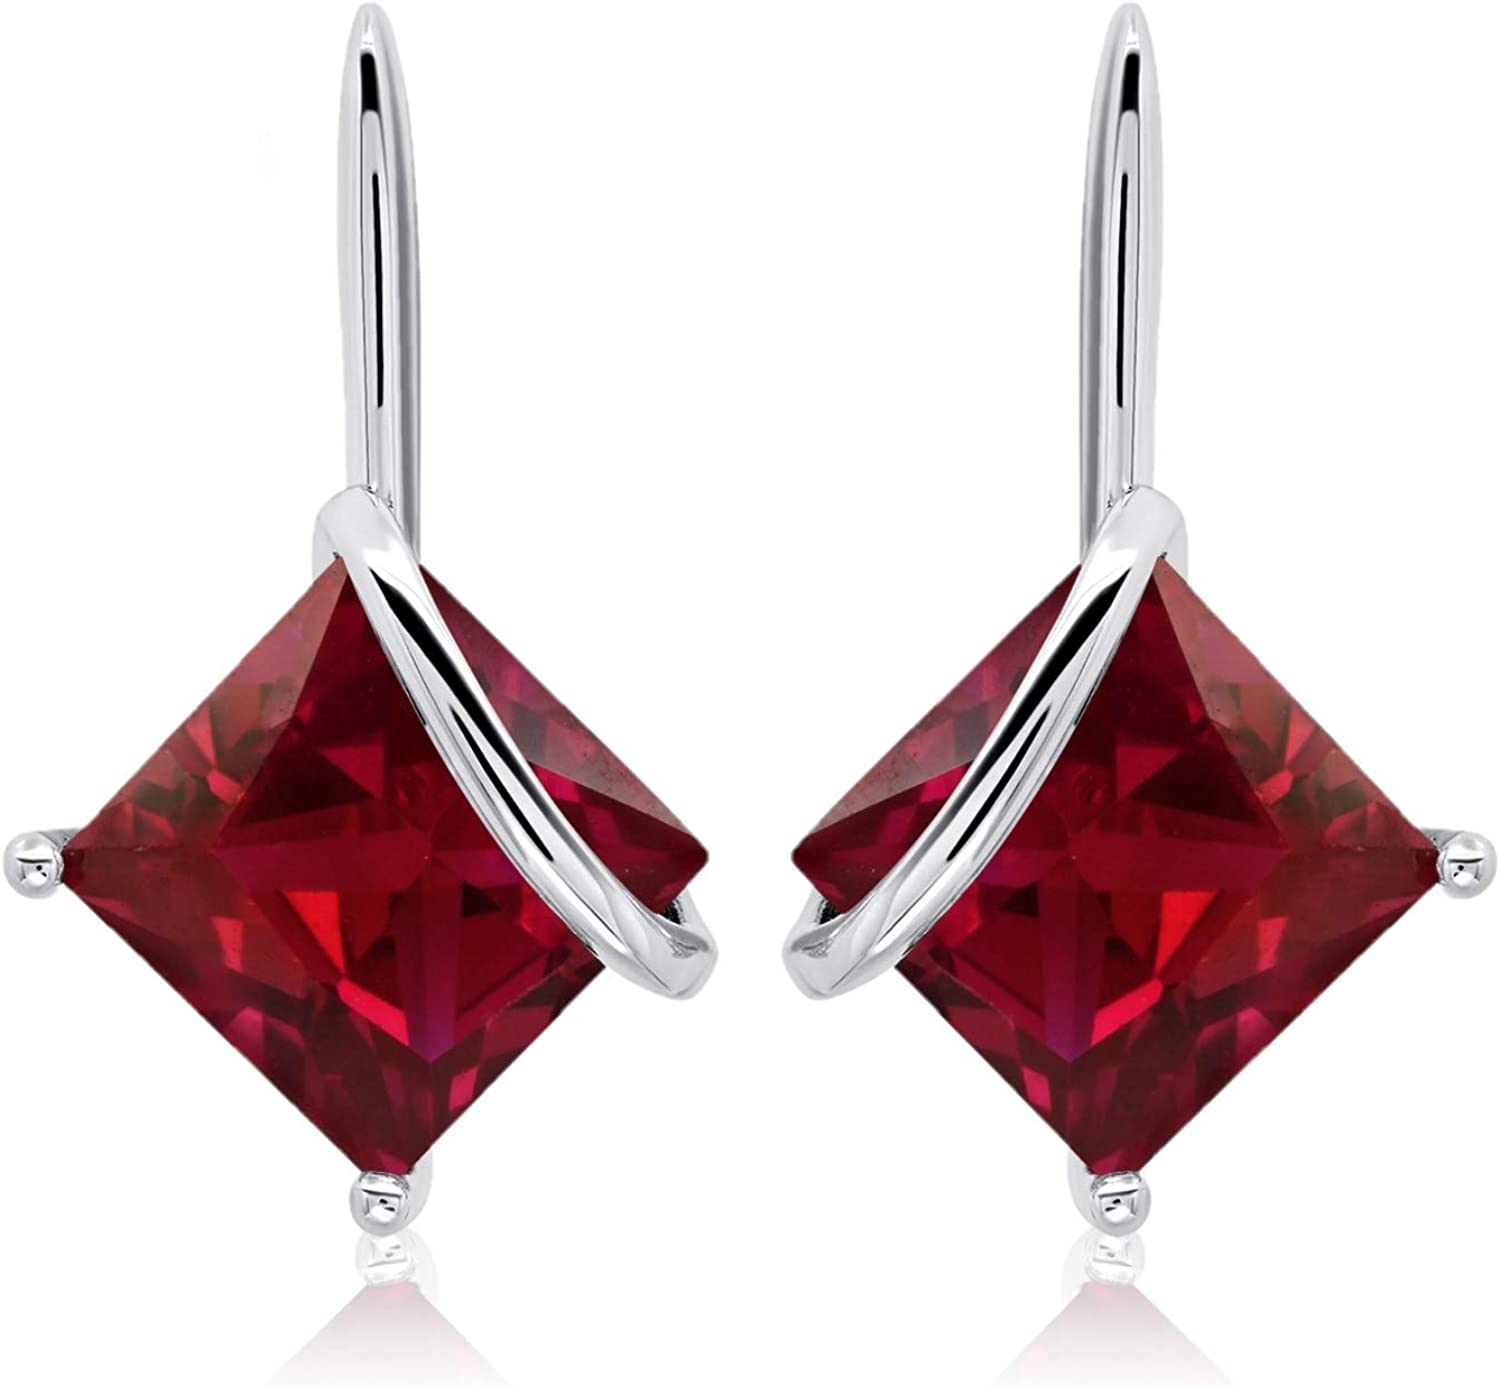 Arlington Mall 7x7mm Square-Cut Gemstone Drop Earrings All items in the store Sterling 925 Silver